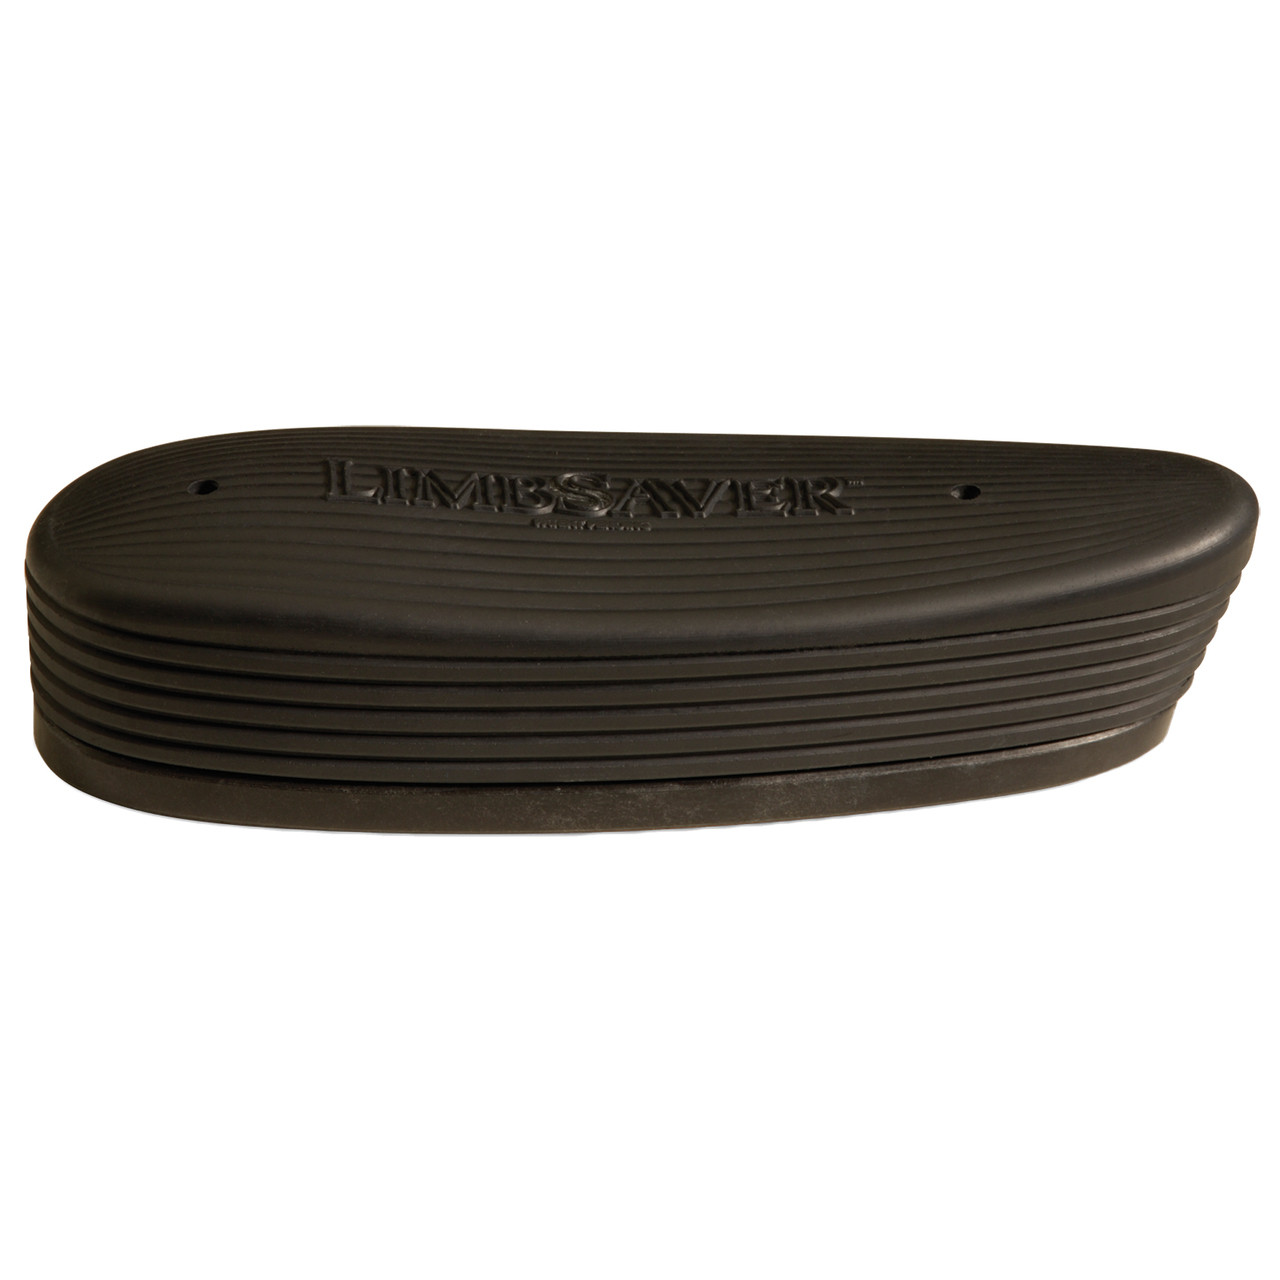 Limbsaver Recoil Pad Fits Rem 700 ADL with Wood Stock 10111